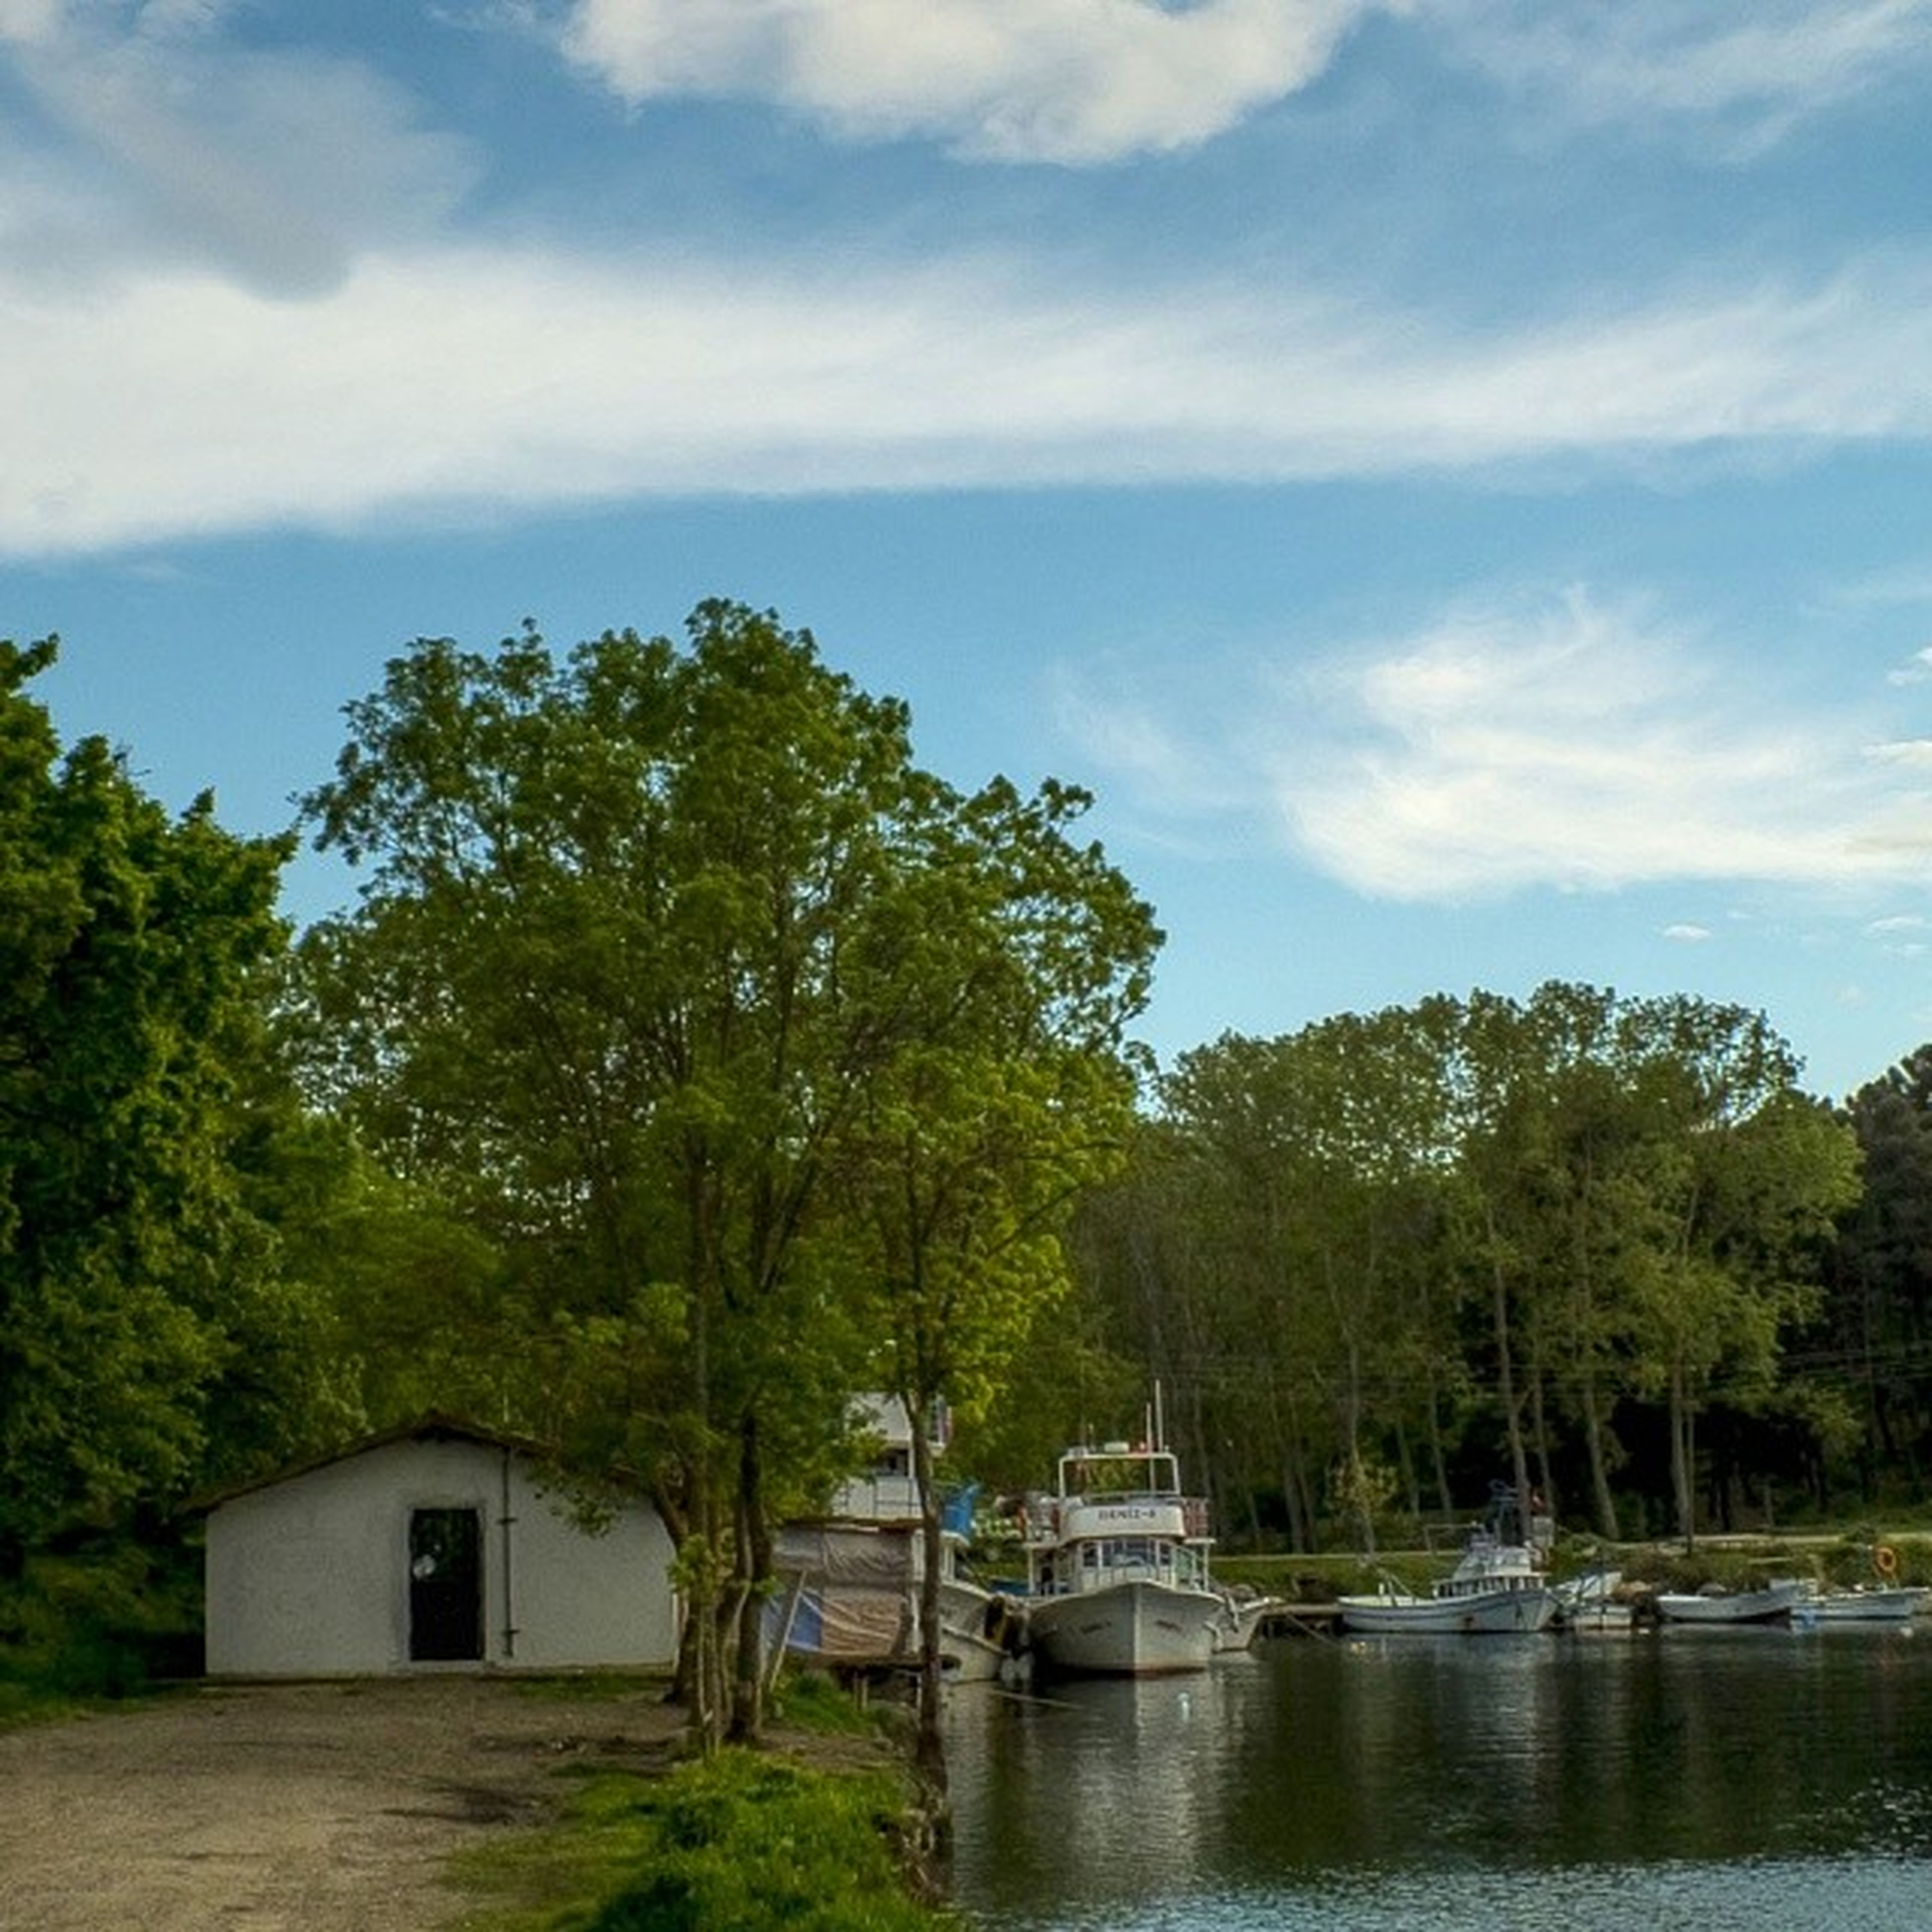 tree, water, nautical vessel, boat, transportation, mode of transport, moored, sky, nature, tranquility, lake, tranquil scene, river, growth, beauty in nature, scenics, cloud - sky, waterfront, day, built structure